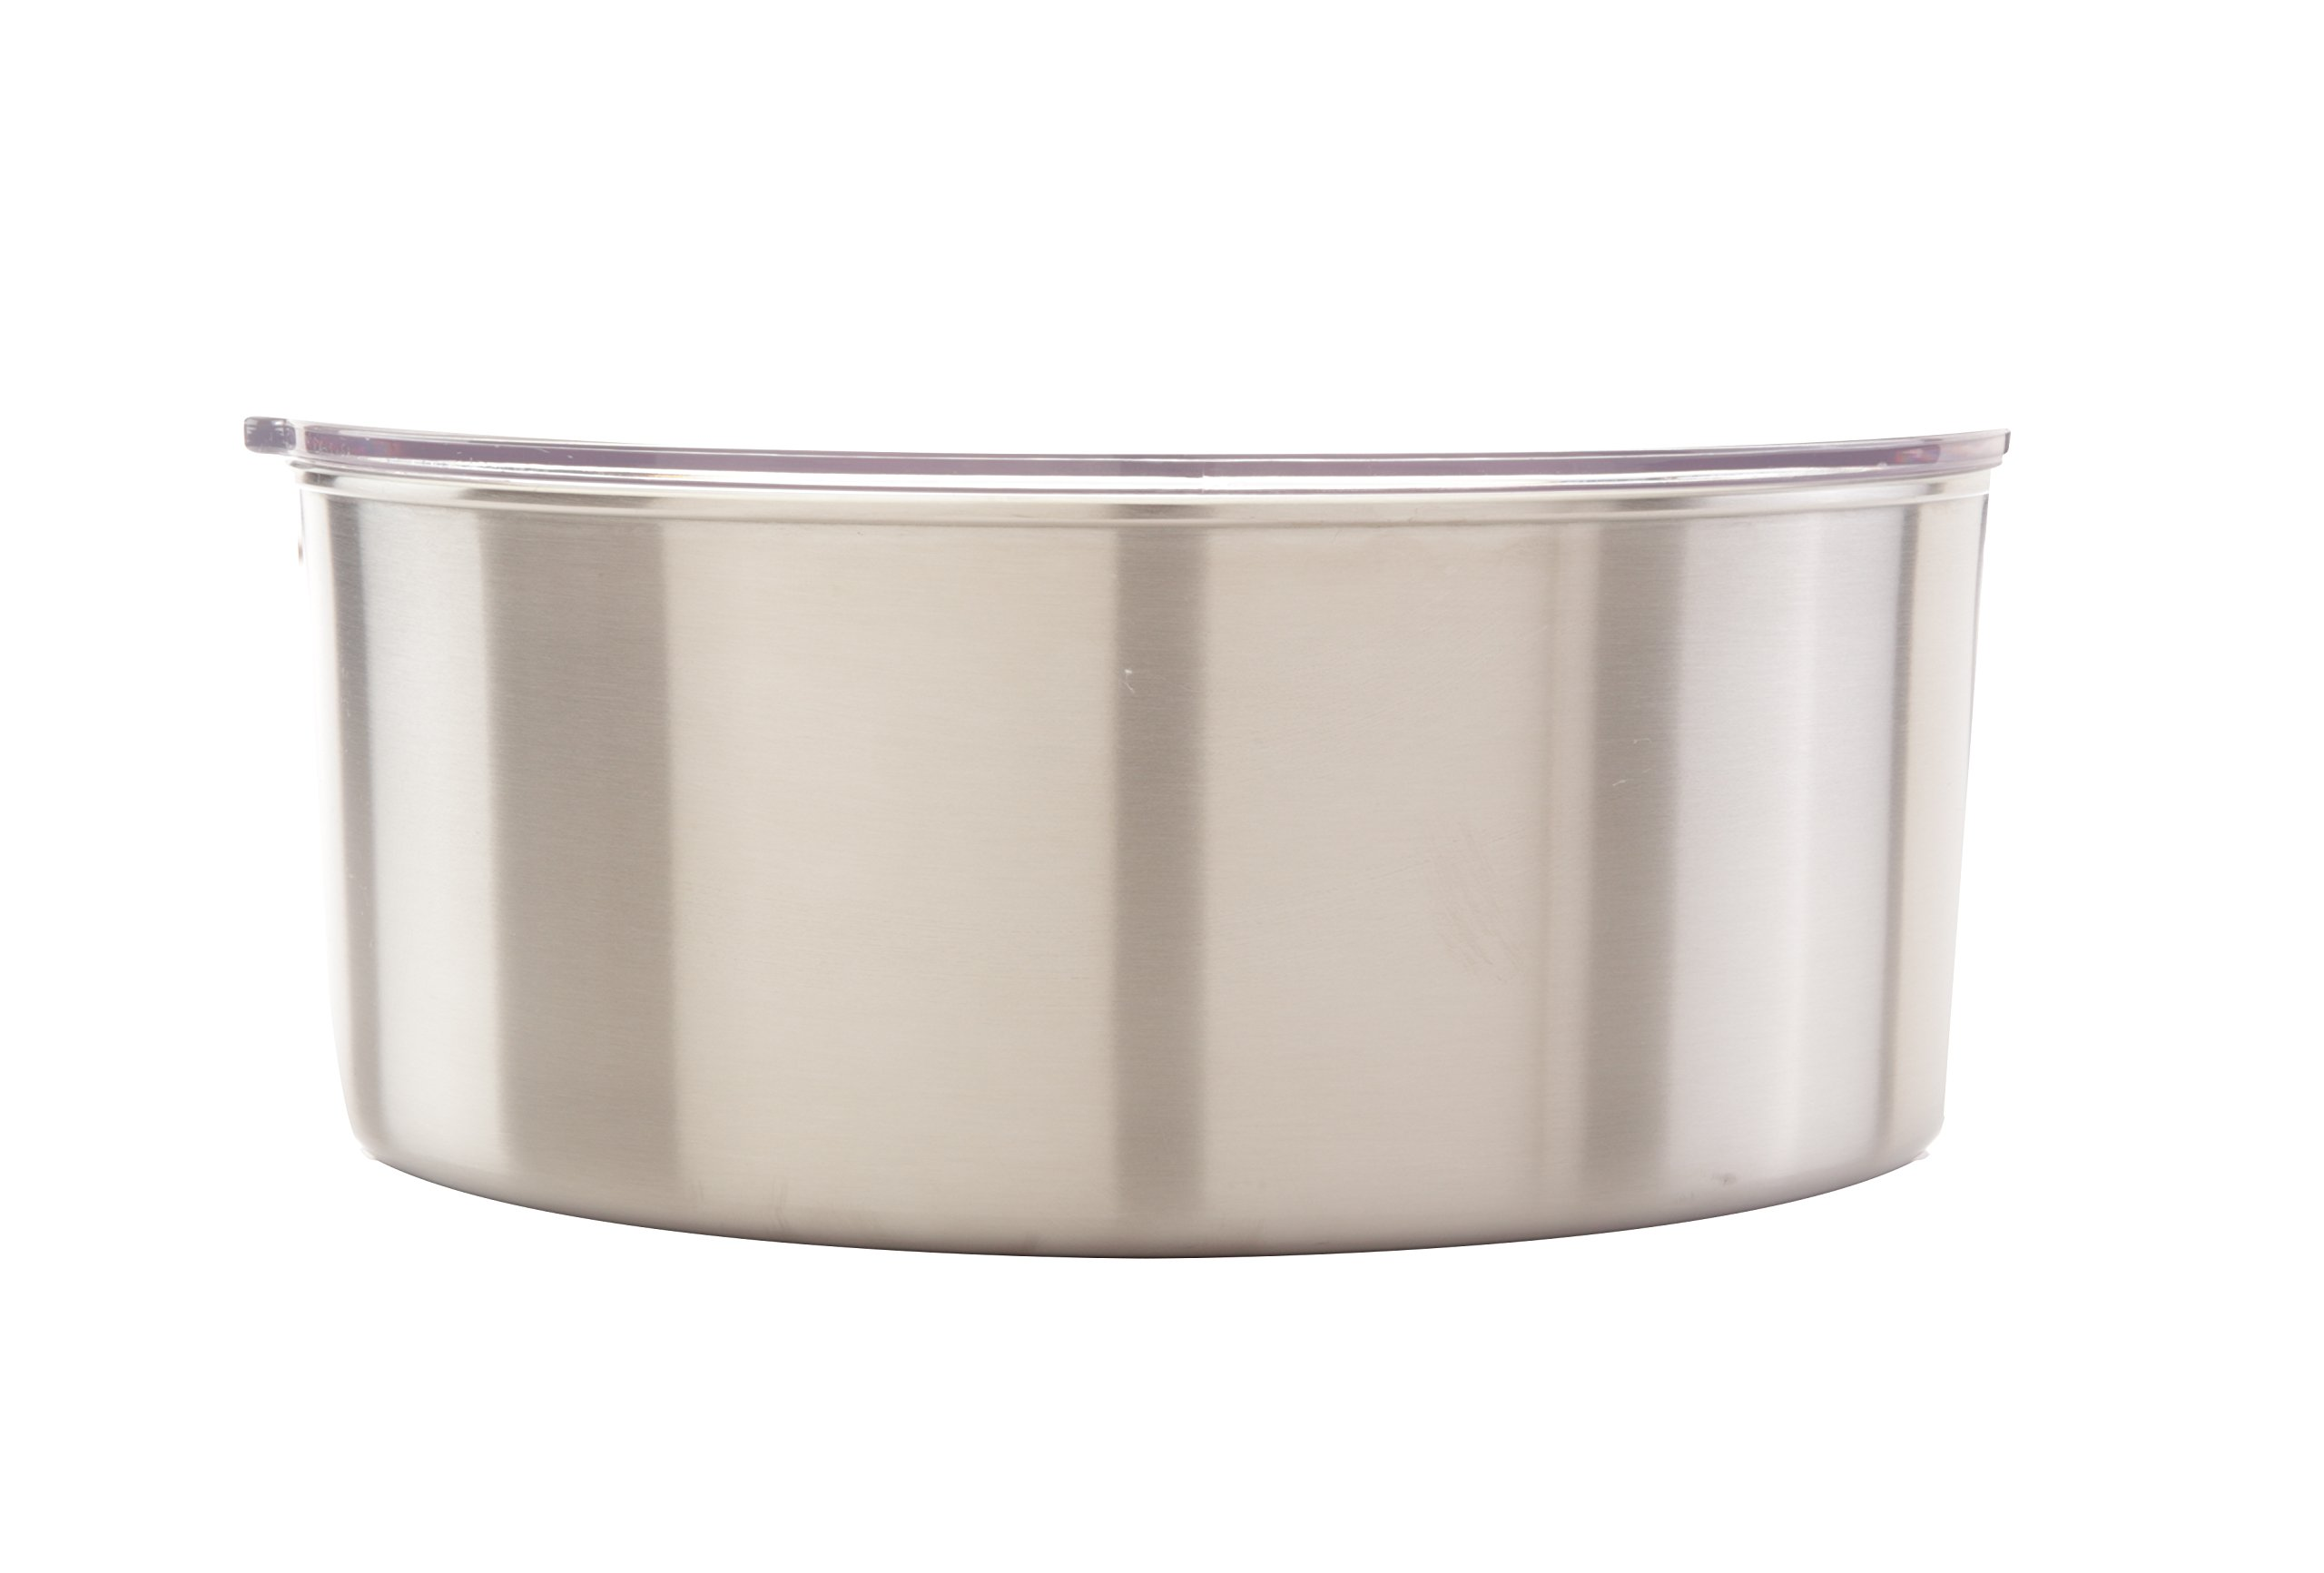 Slopper Stopper Dripless Dog Water Bowl - Large Breed Dogs 51-85 Lbs by Slopper Stopper (Image #3)